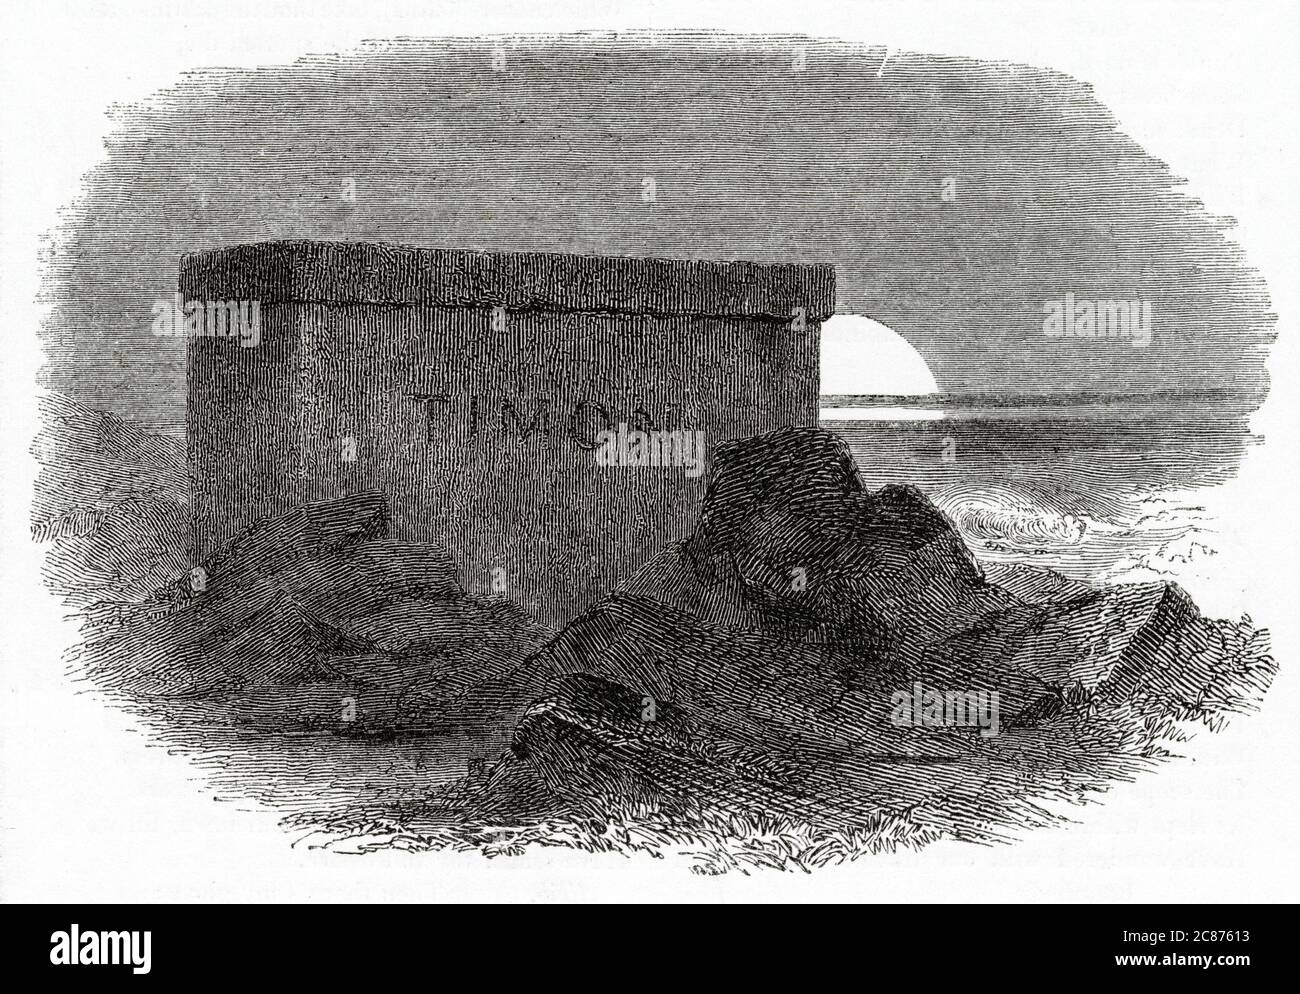 Illustration by Kenny Meadows to Timon of Athens, by William Shakespeare. Endpiece design, showing Timon's tomb.       Date: 1840 Stock Photo